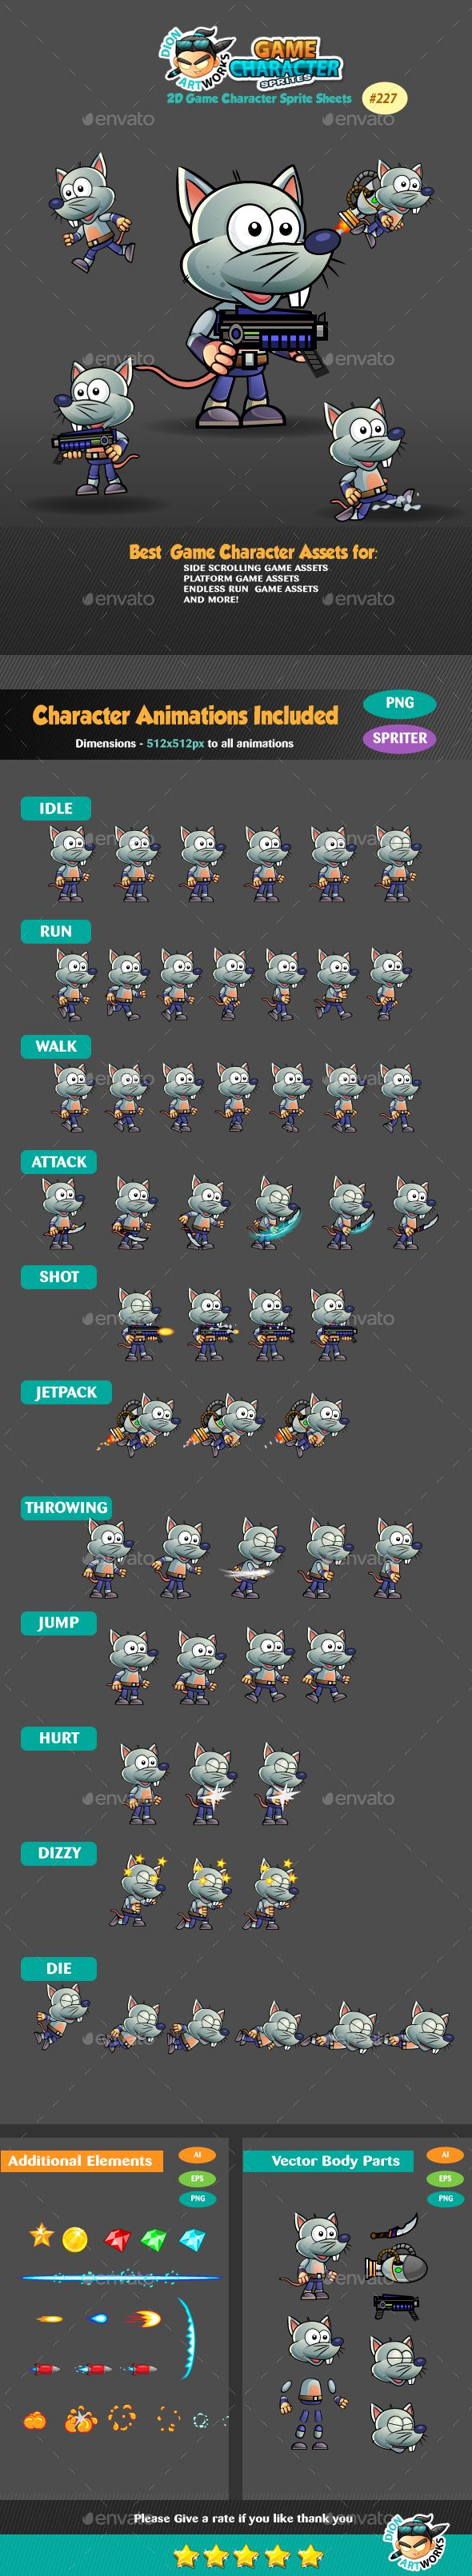 Rat Warrior Game Character Sprites 227 - Sprites Game Asset Design Template Vector EPS. Vector AI. Download here: http://graphicriver.net/item/rat-warrior-game-character-sprites-227/16467339?ref=yinkira